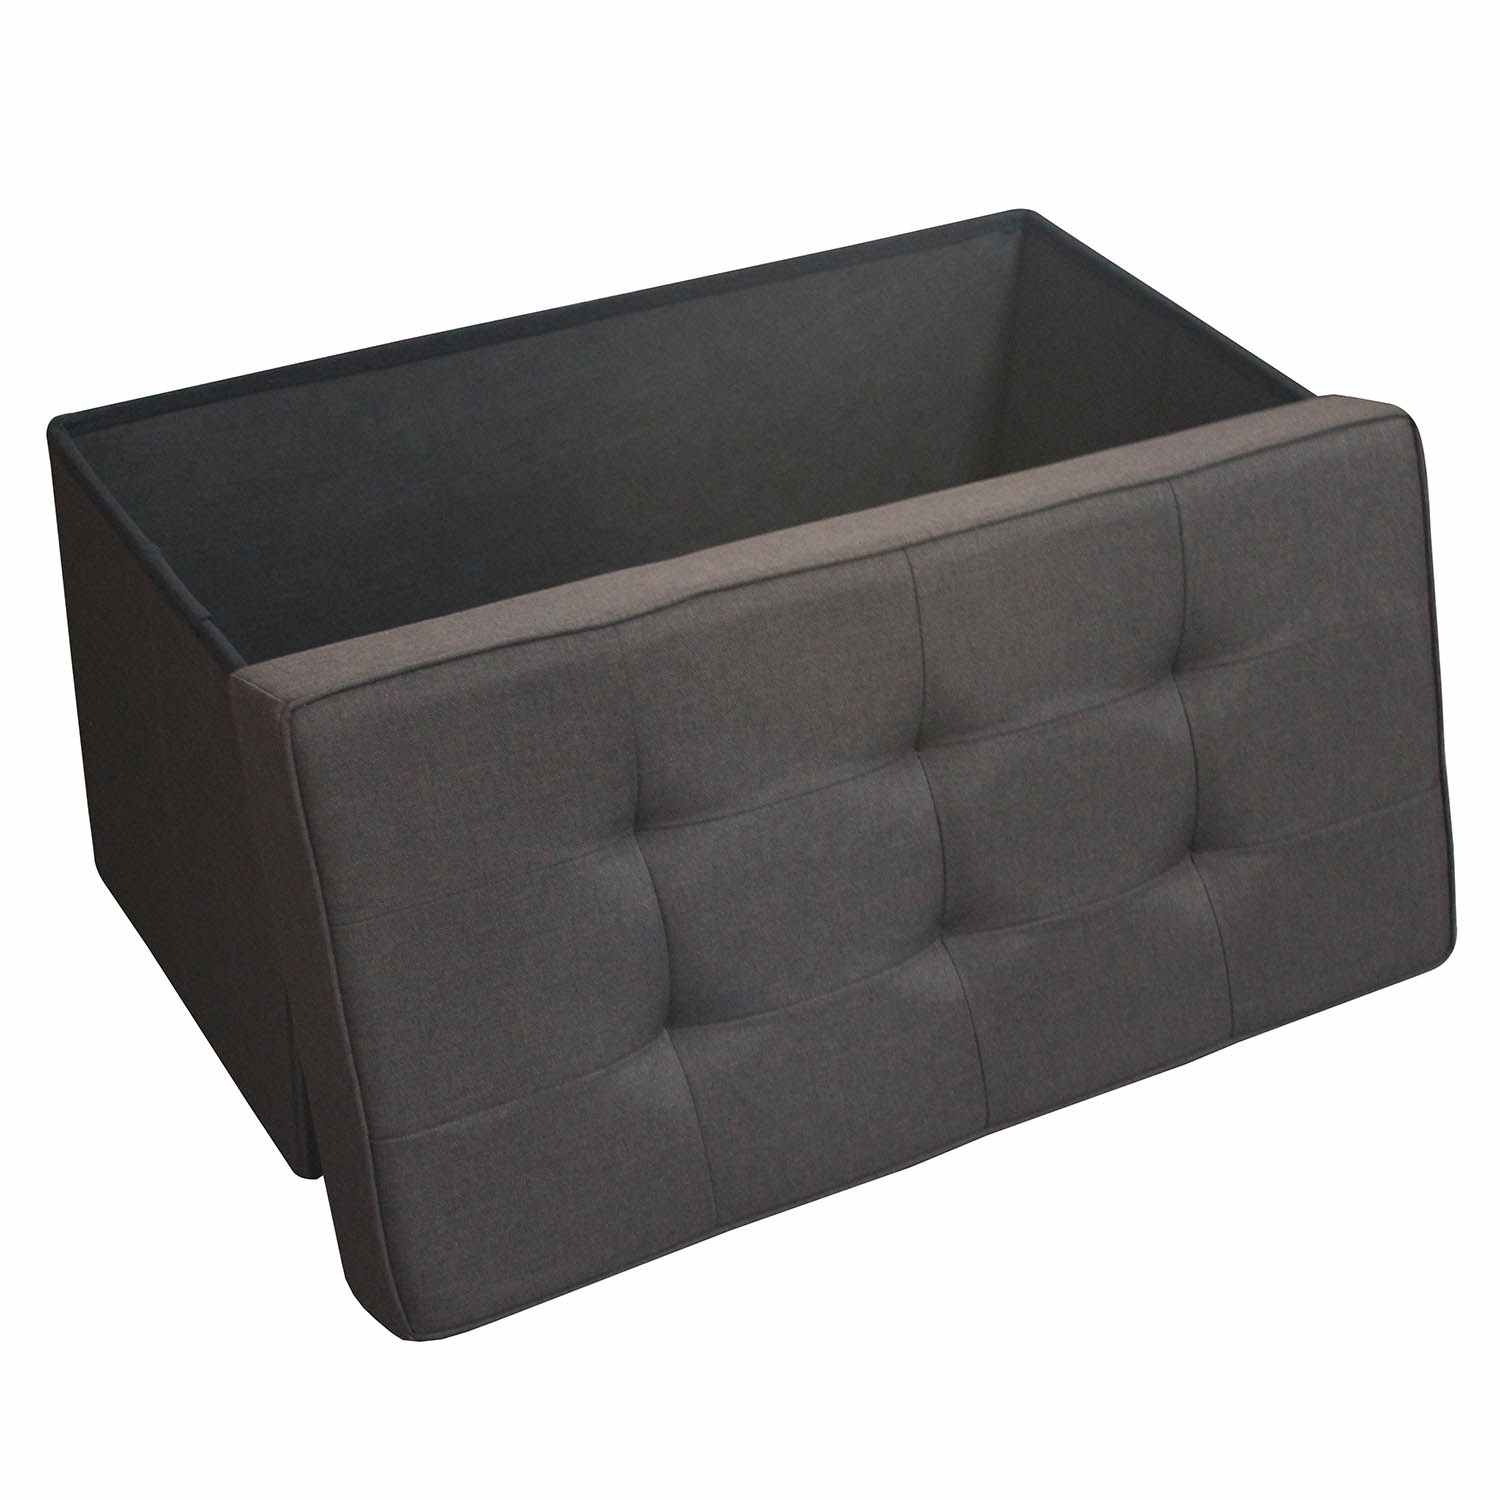 deco in paris banquette coffre pliable en tissu marron steven banquette pliable tissu marron. Black Bedroom Furniture Sets. Home Design Ideas